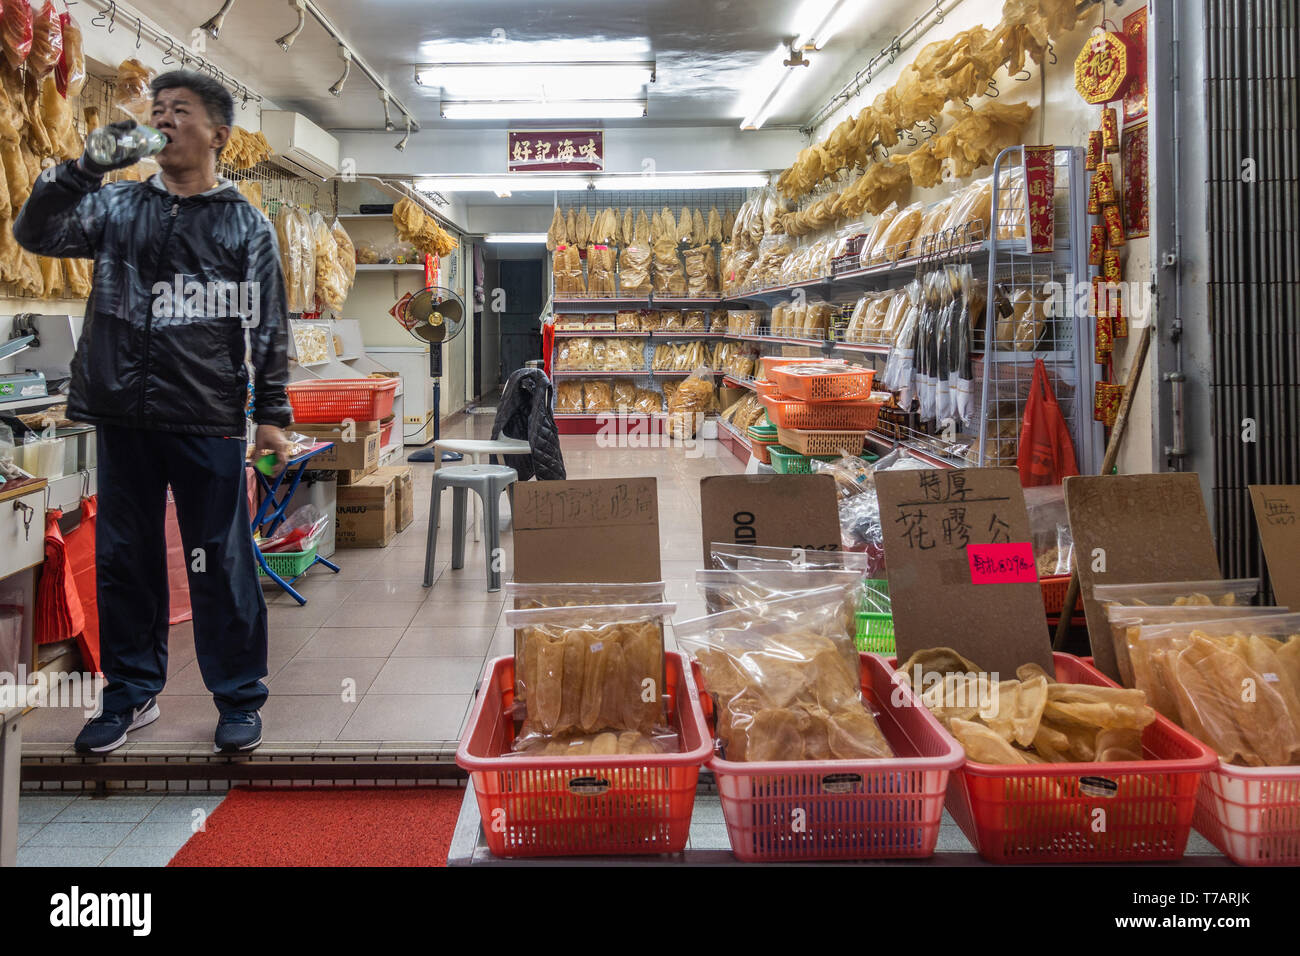 Hong Kong, China - March 7, 2019: Tai O Fishing village. Shop owner is black clothes drinks water while guarding his large dried seafood store, disply - Stock Image